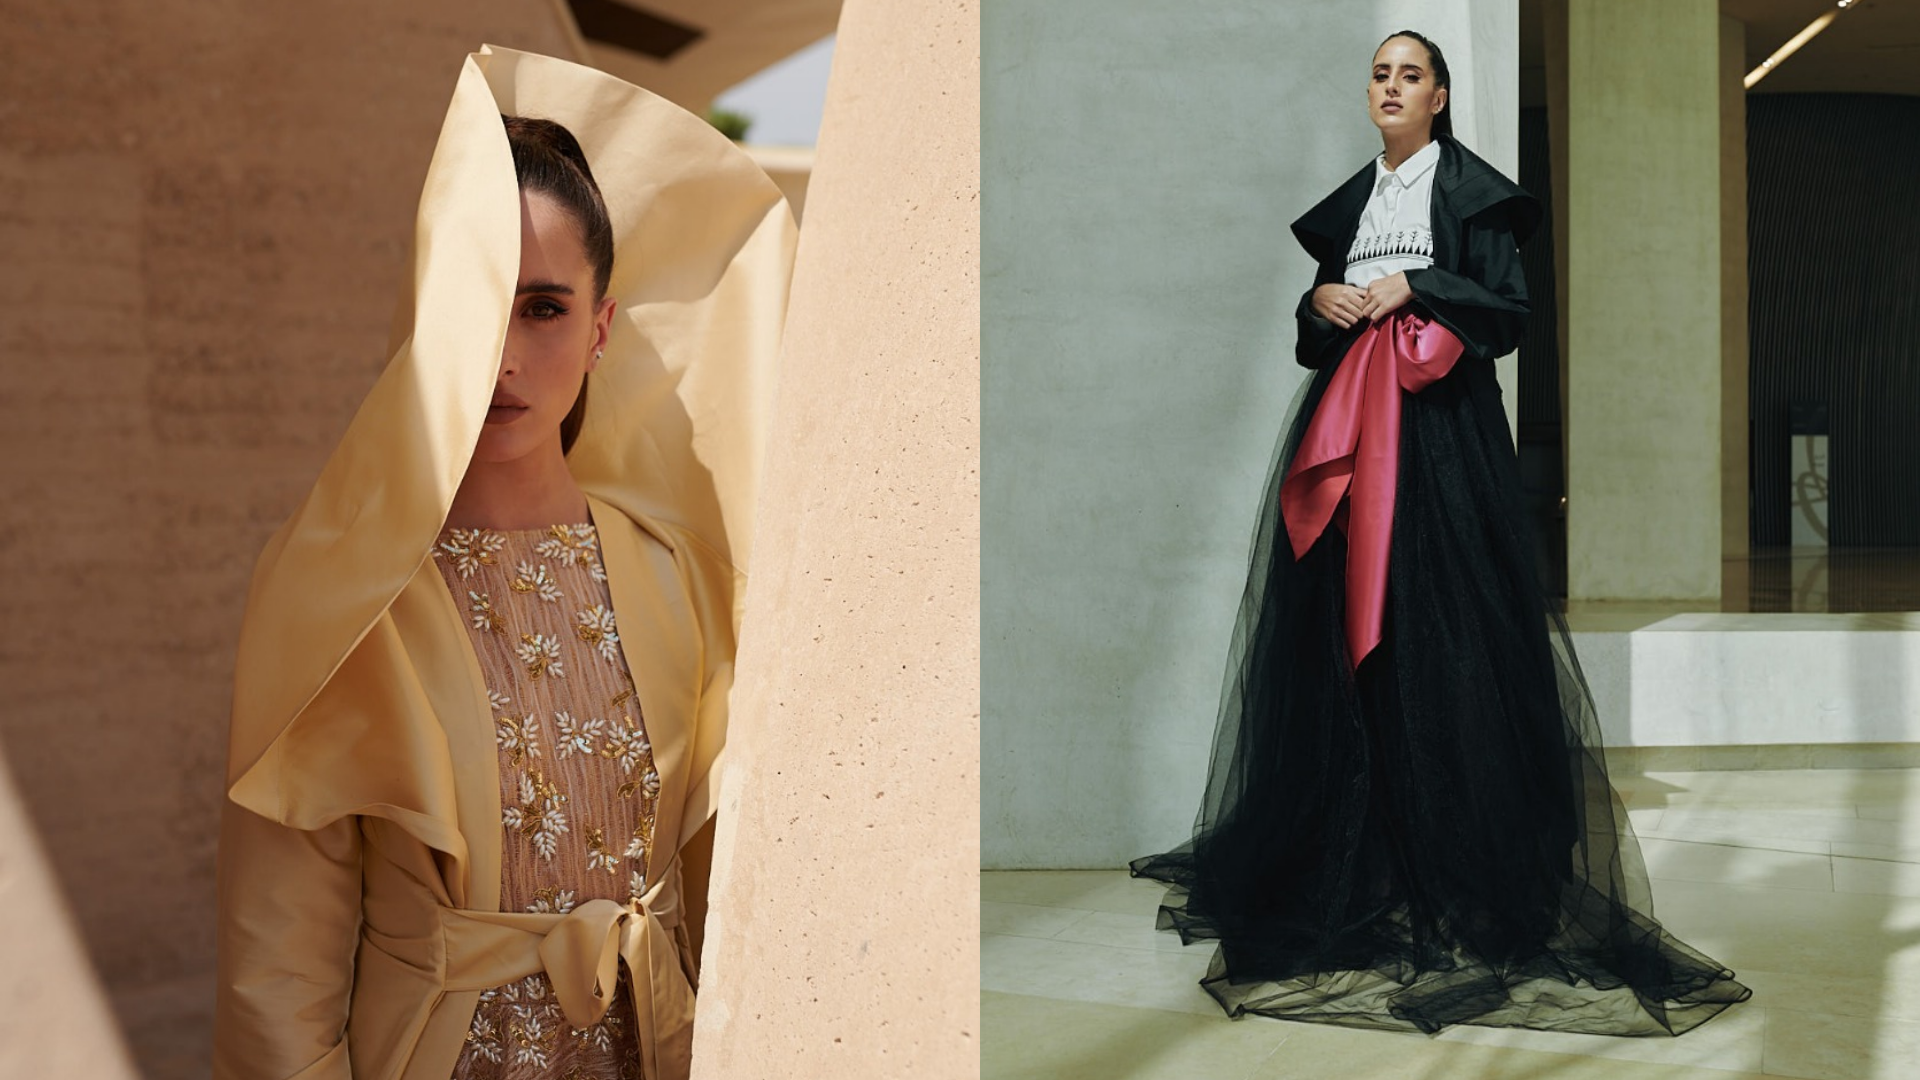 Taleedah Tamer Is The Face Of The Tanween Fashion Exhibit At Ithra's 'Creativity Season' In Saudi Arabia